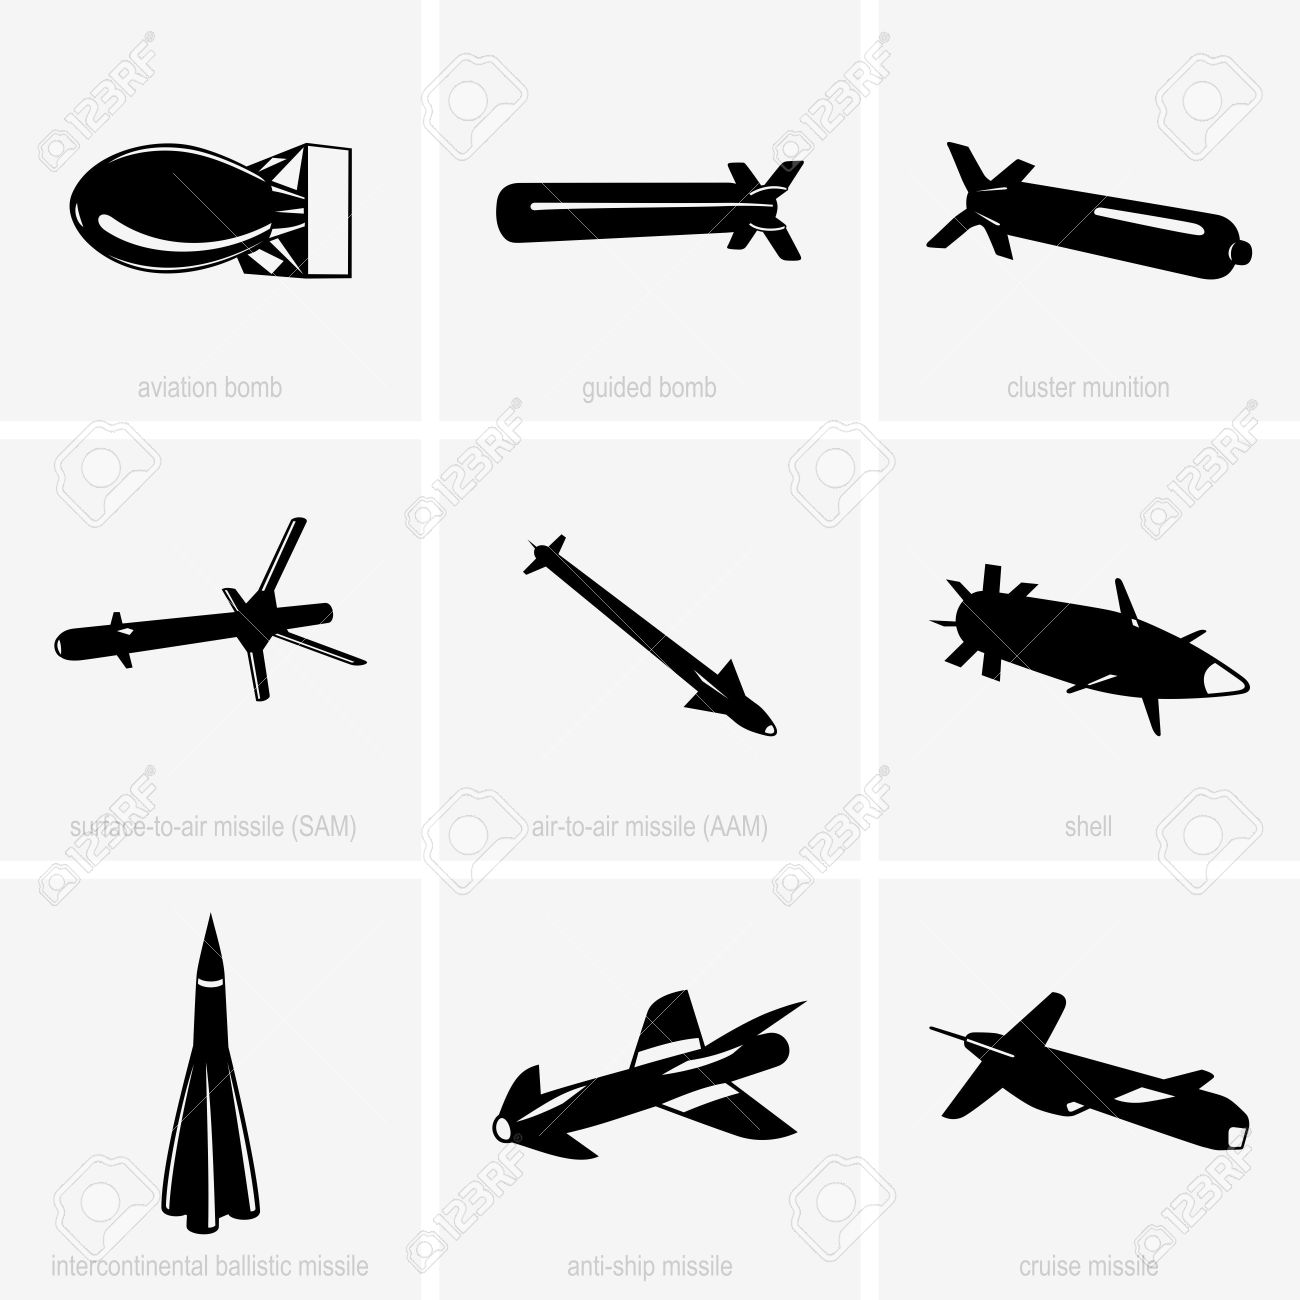 Heavy Weapon Icons Royalty Free Cliparts, Vectors, And Stock.